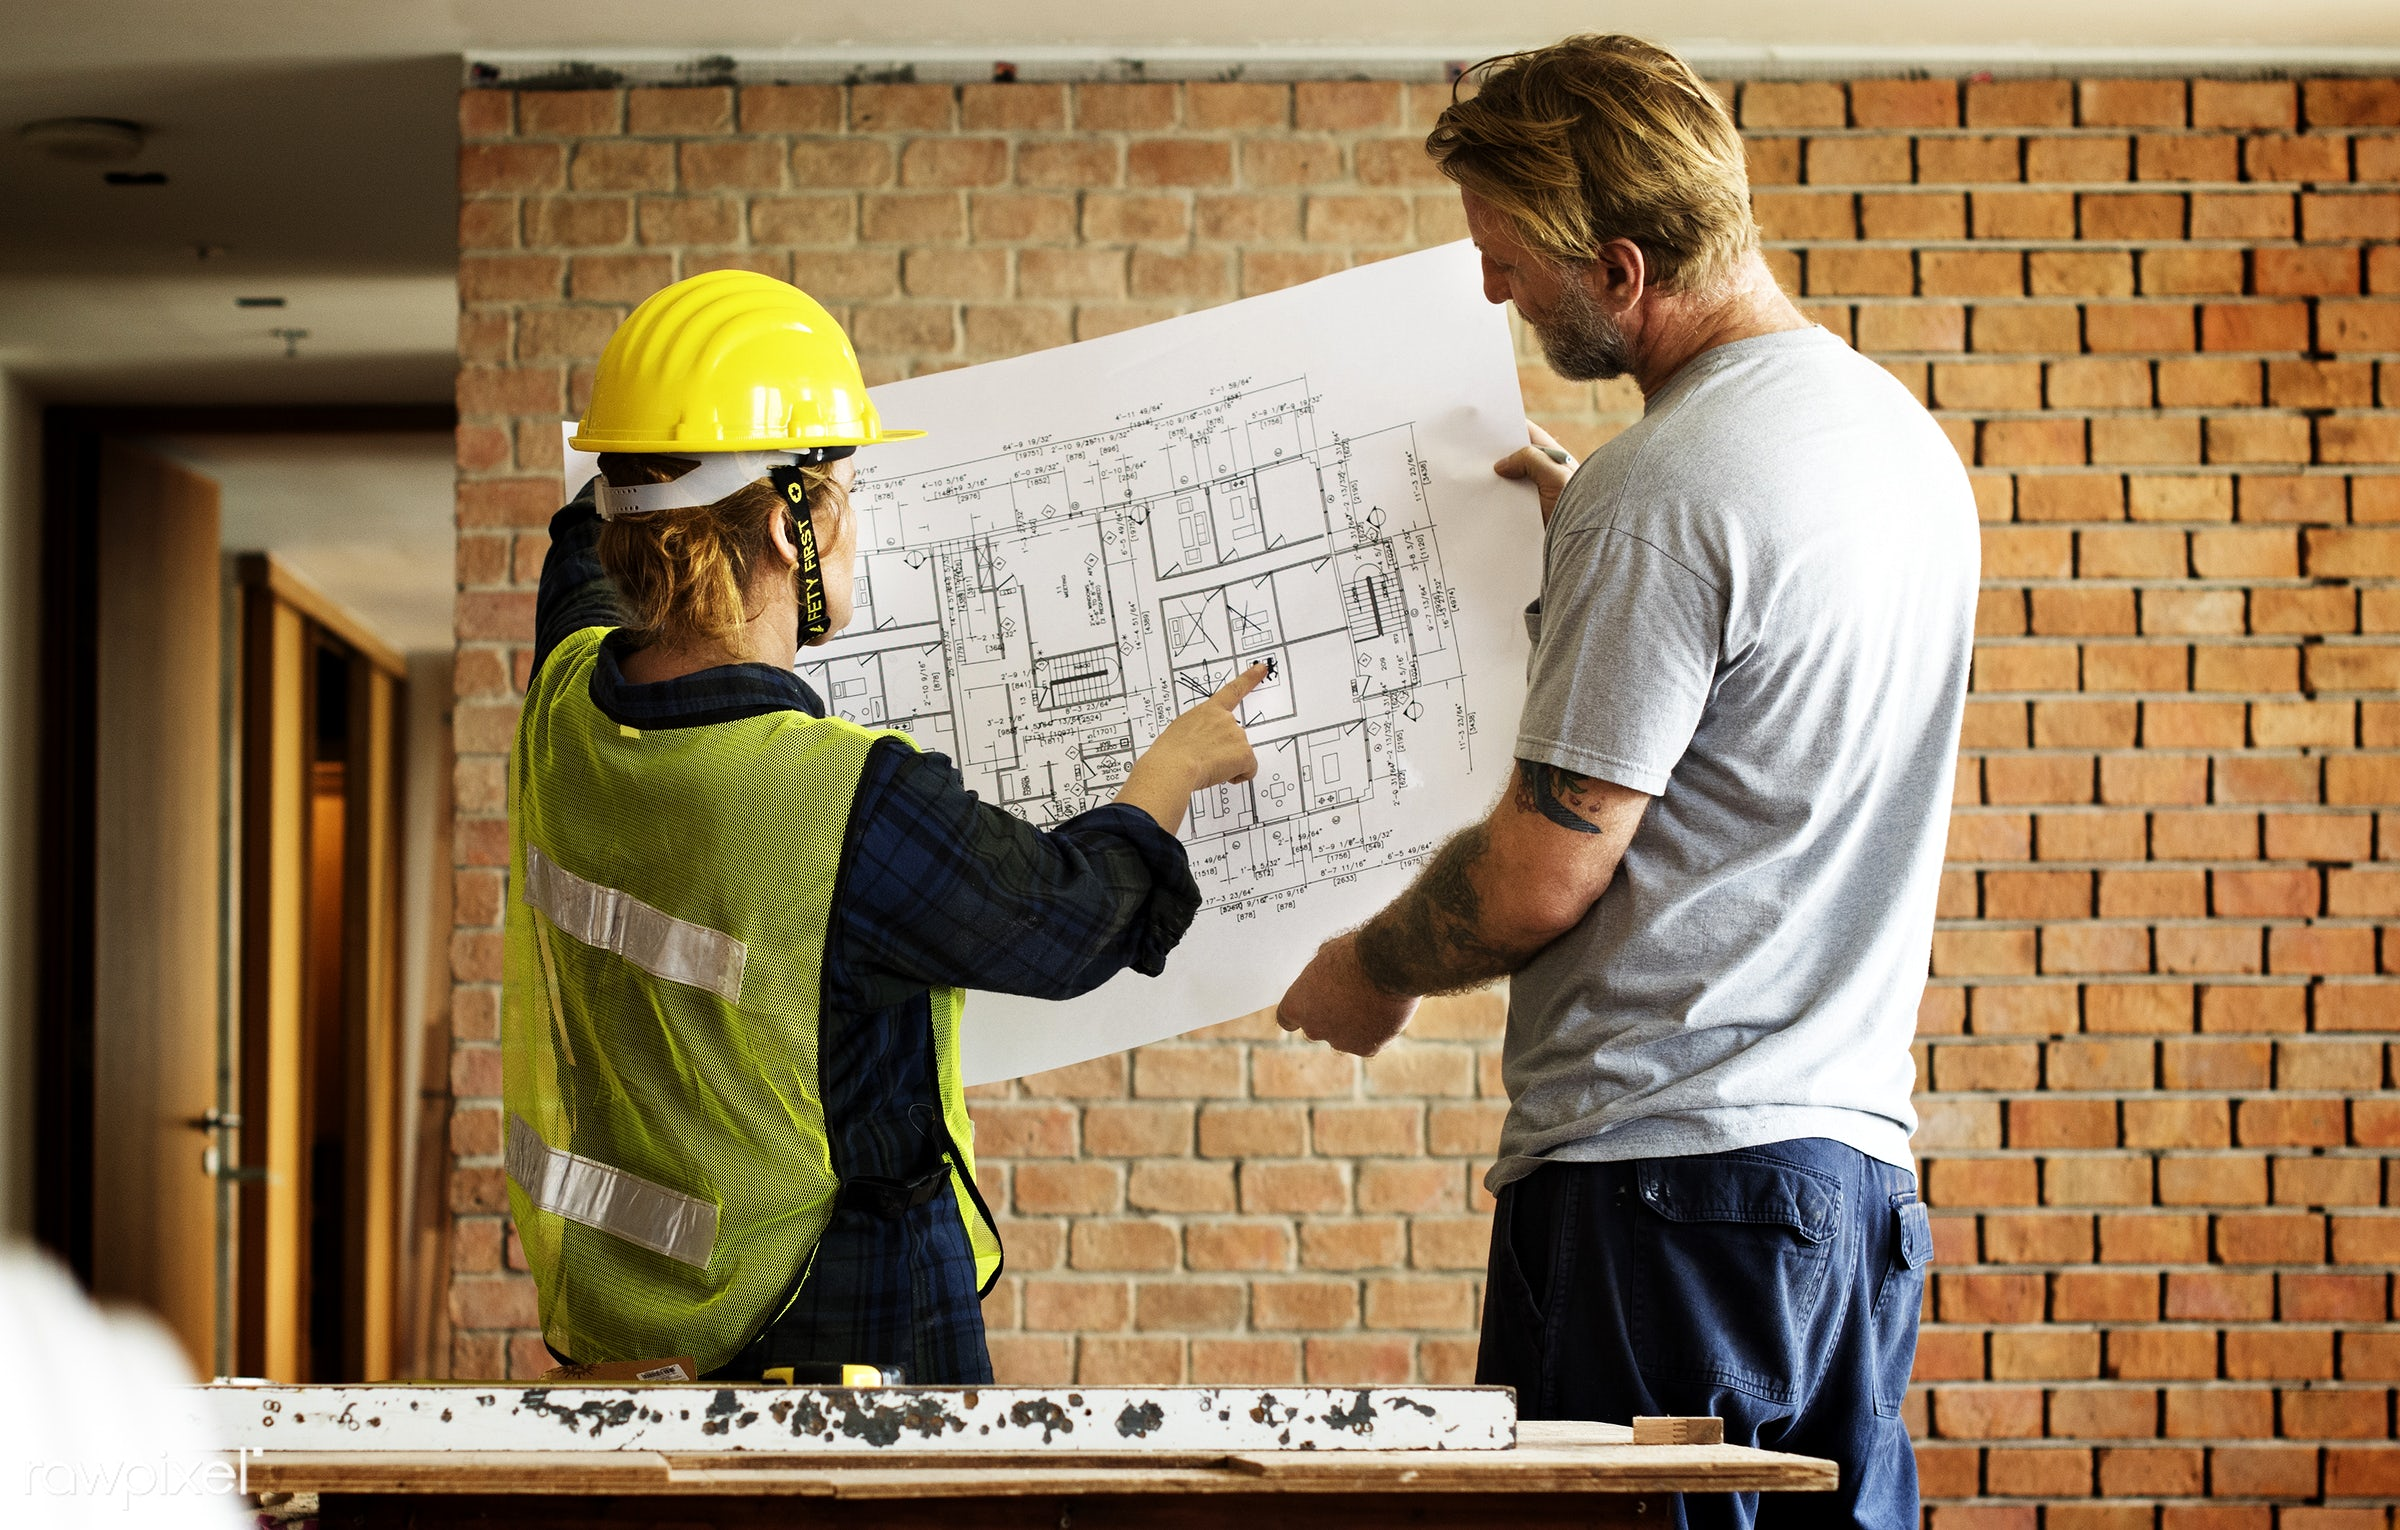 interior, model, brick, paper, architecture, build, engineering, drawing, document, woman, tattoo, construction, man,...